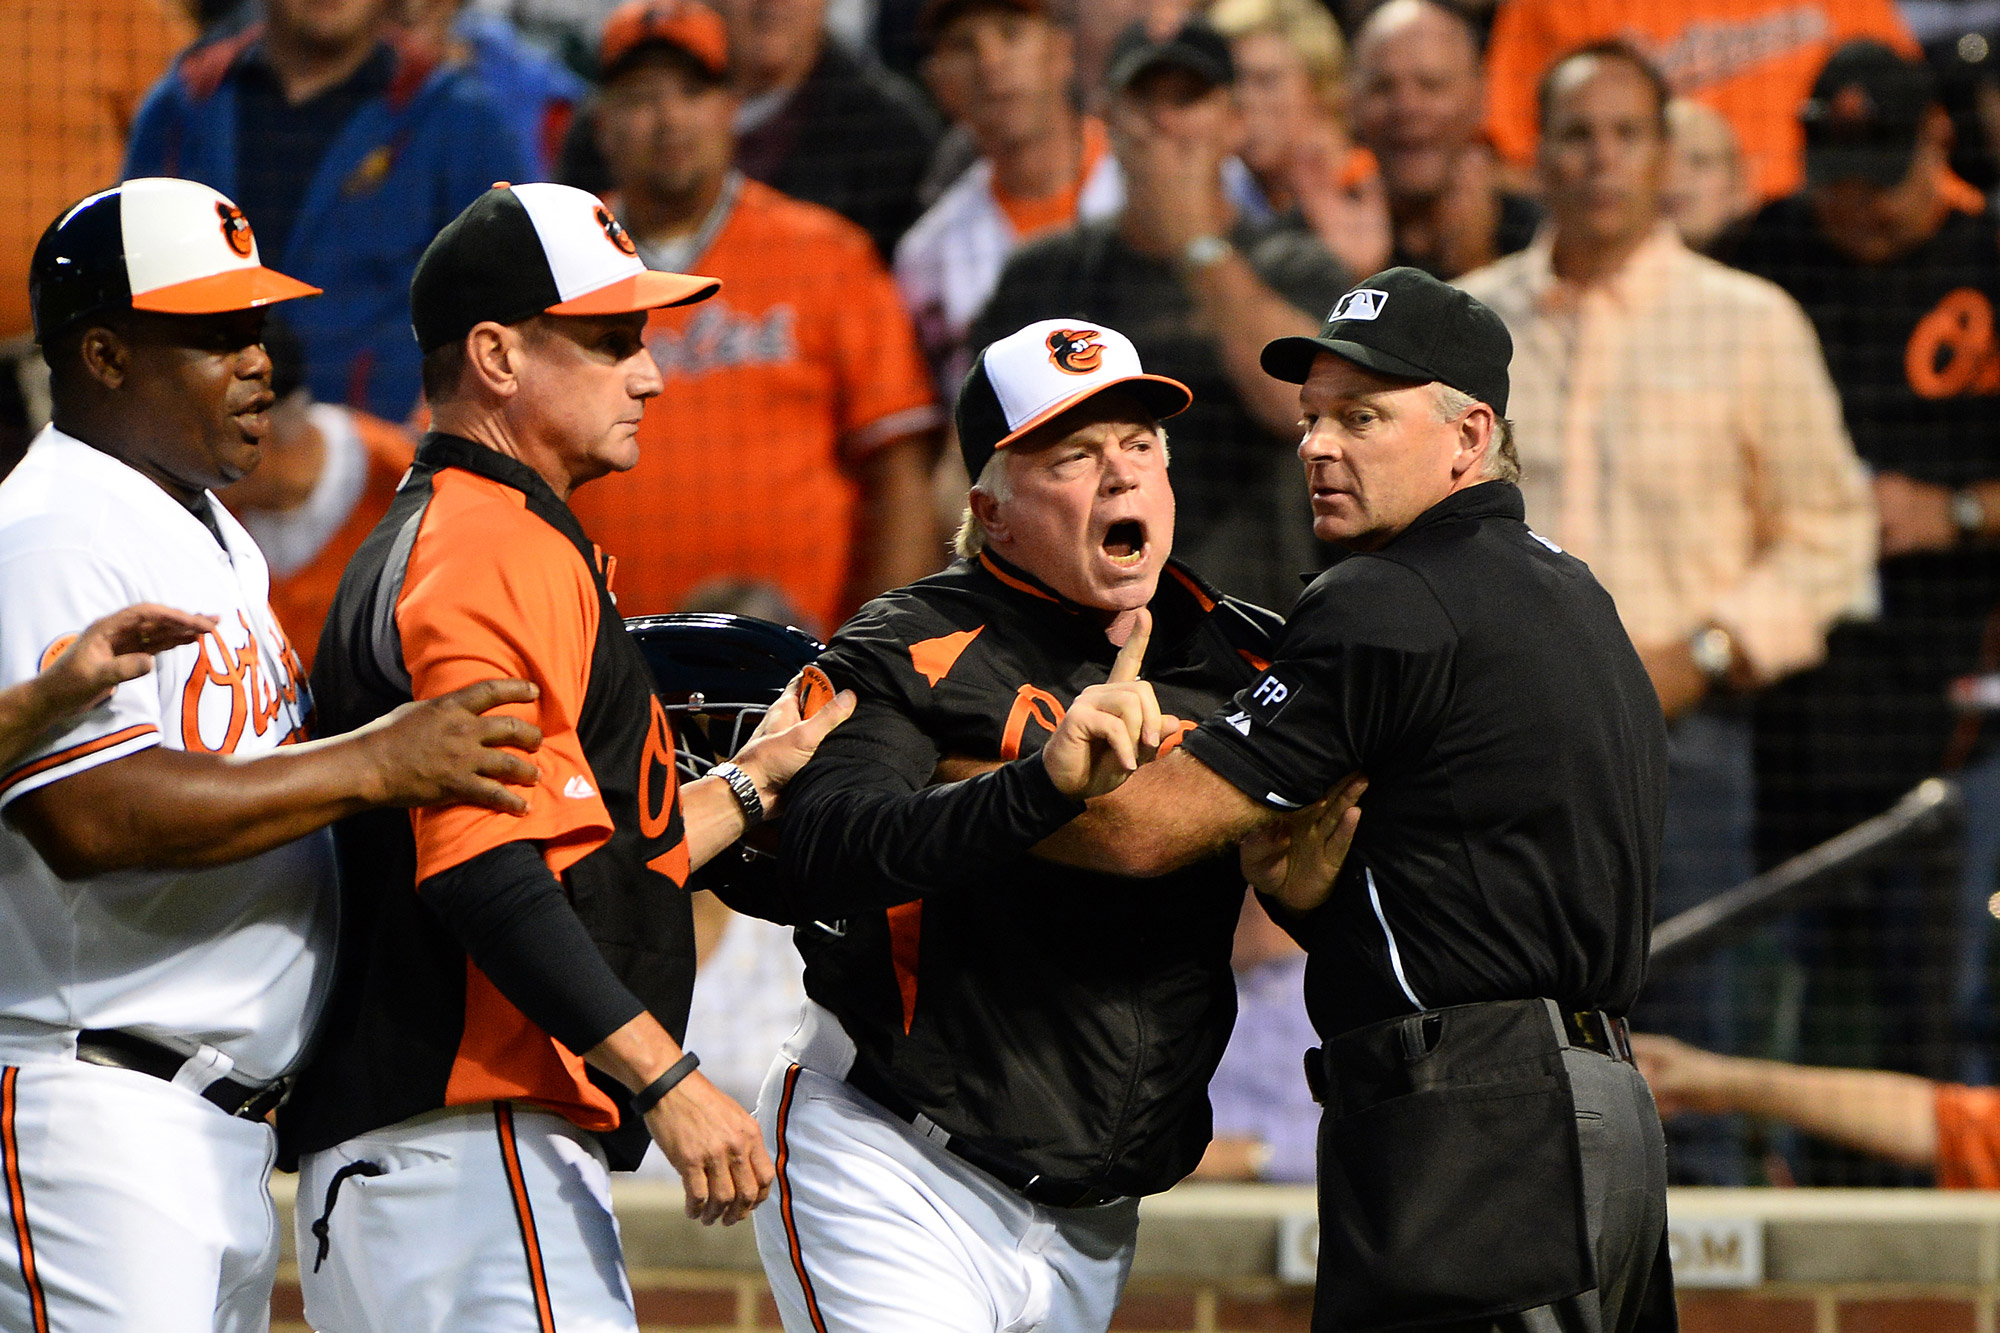 Baltimore Orioles manager Buck Showalter yells over a call on Sept. 9, 2013 at Oriole Park at Camden Yards in Baltimore, Md.